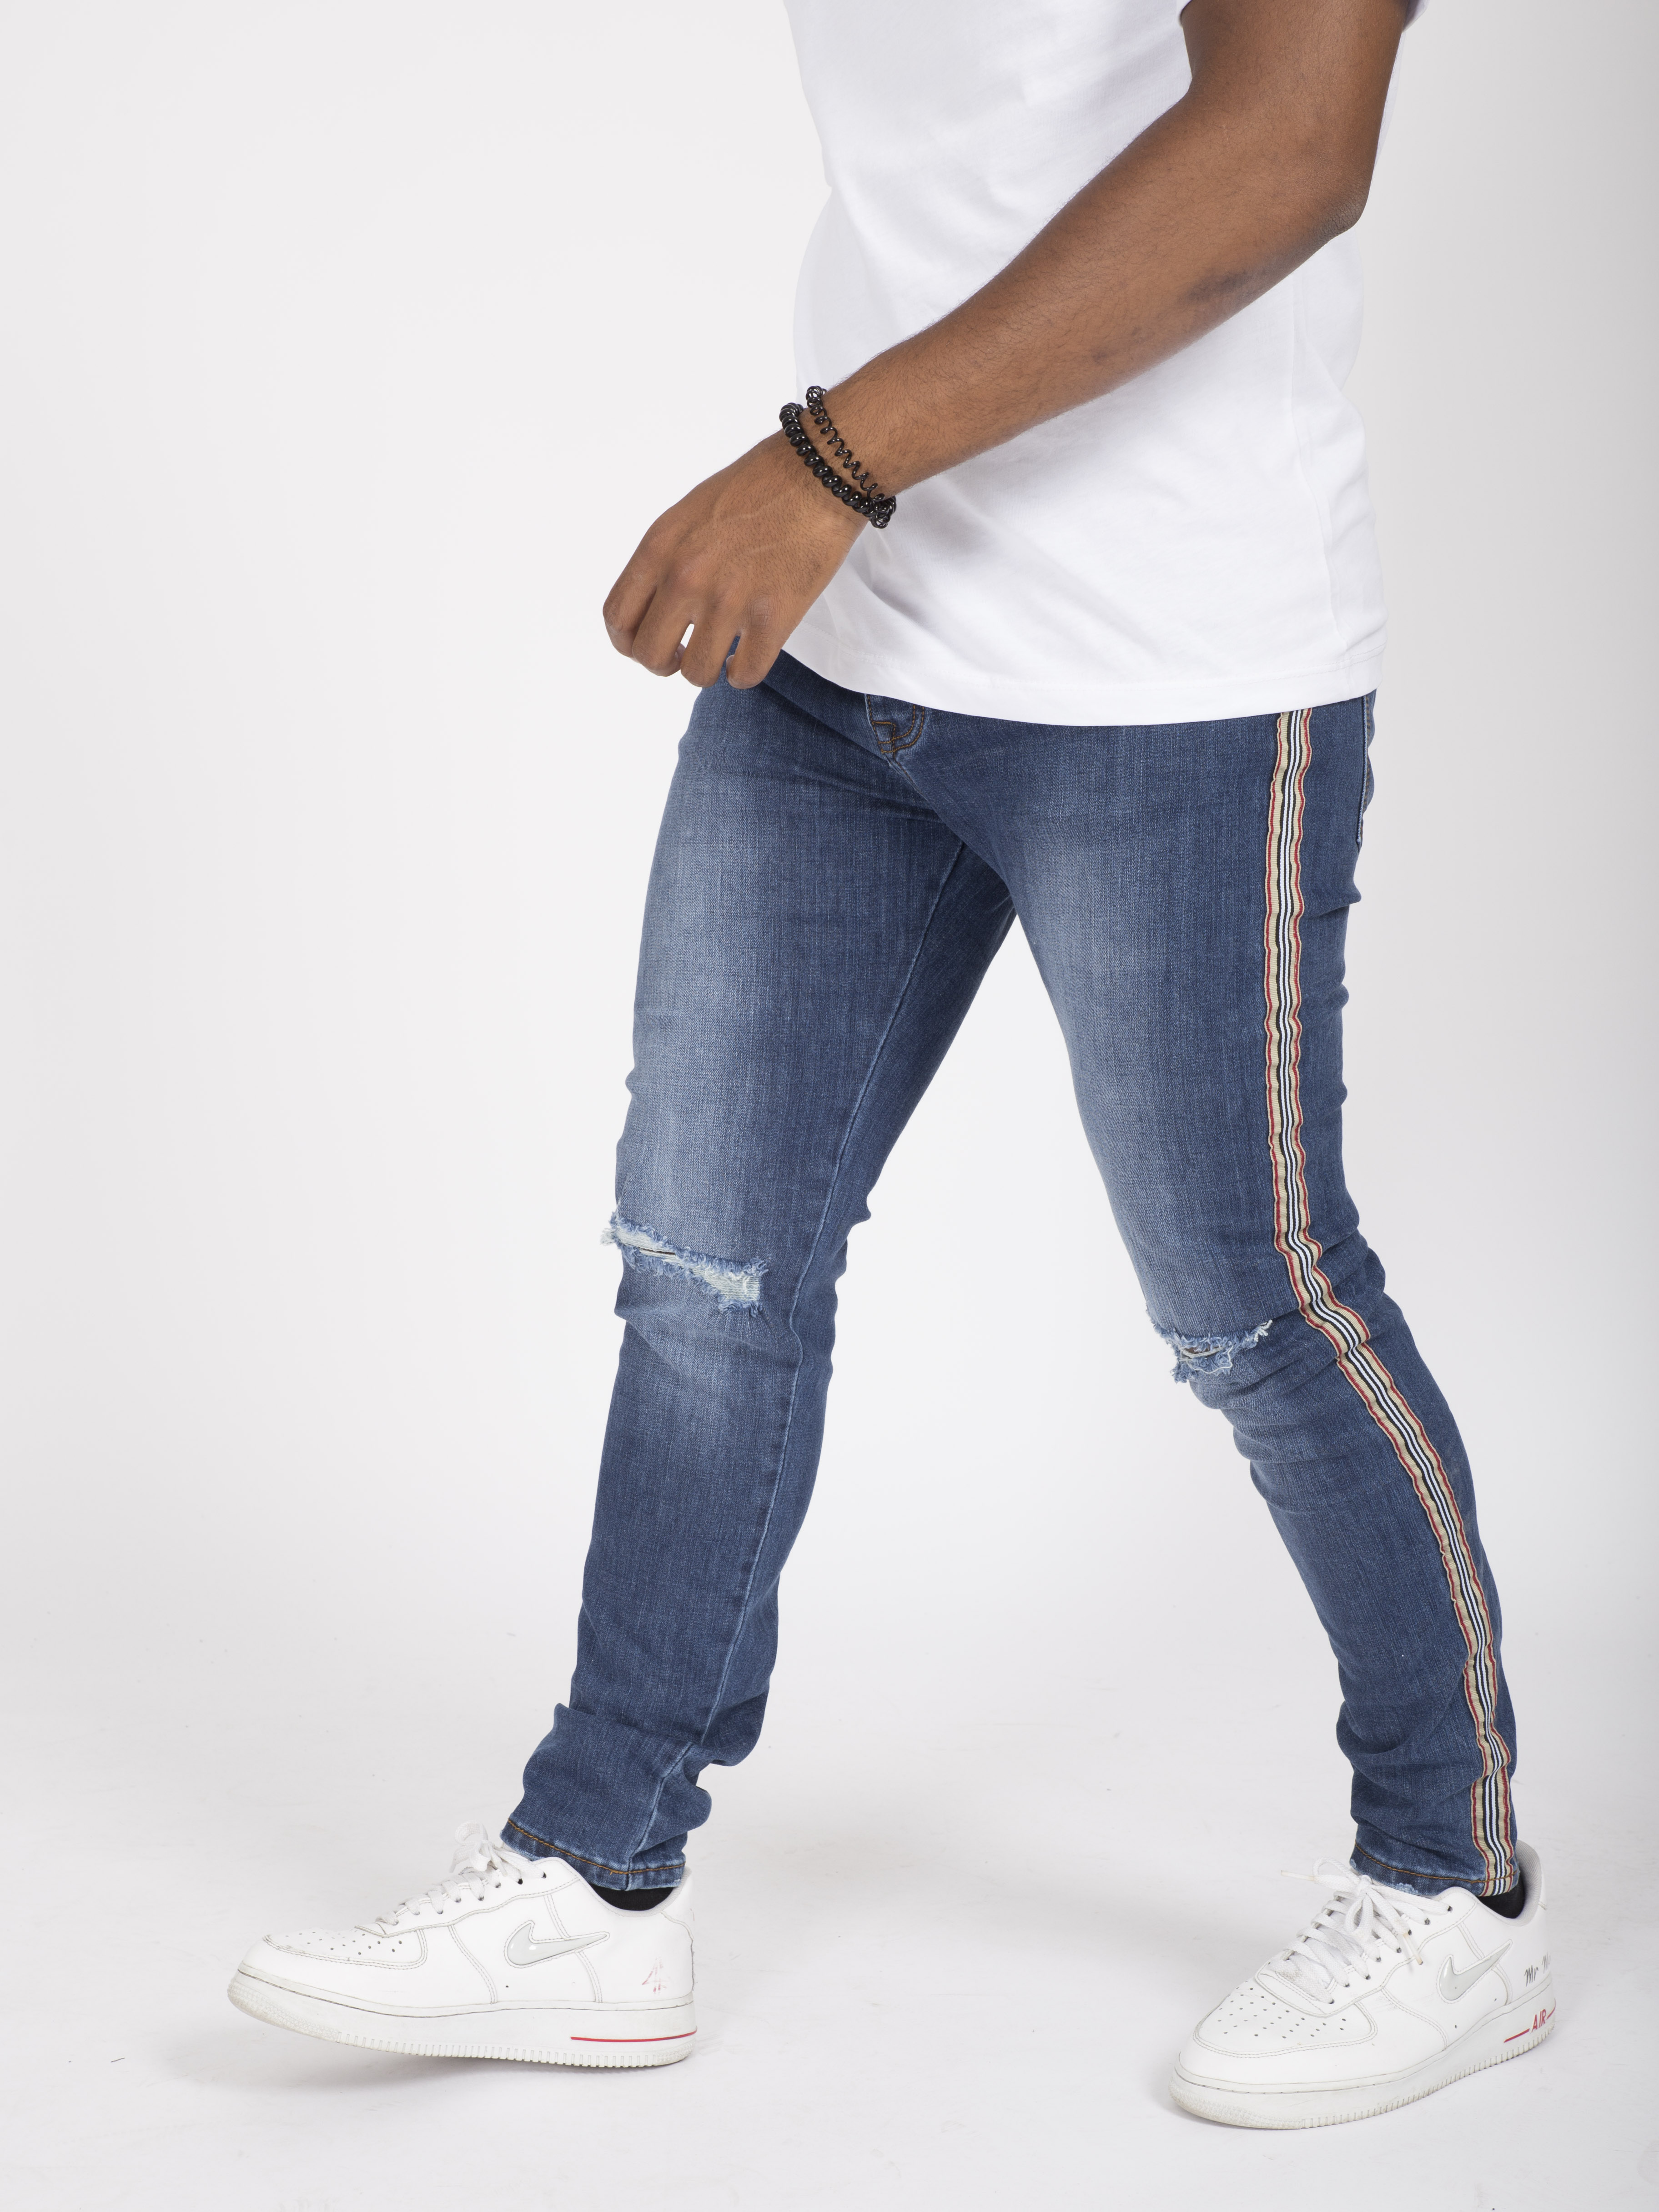 Jeans Homme Bleu AARHON A108 #c eFashion Paris